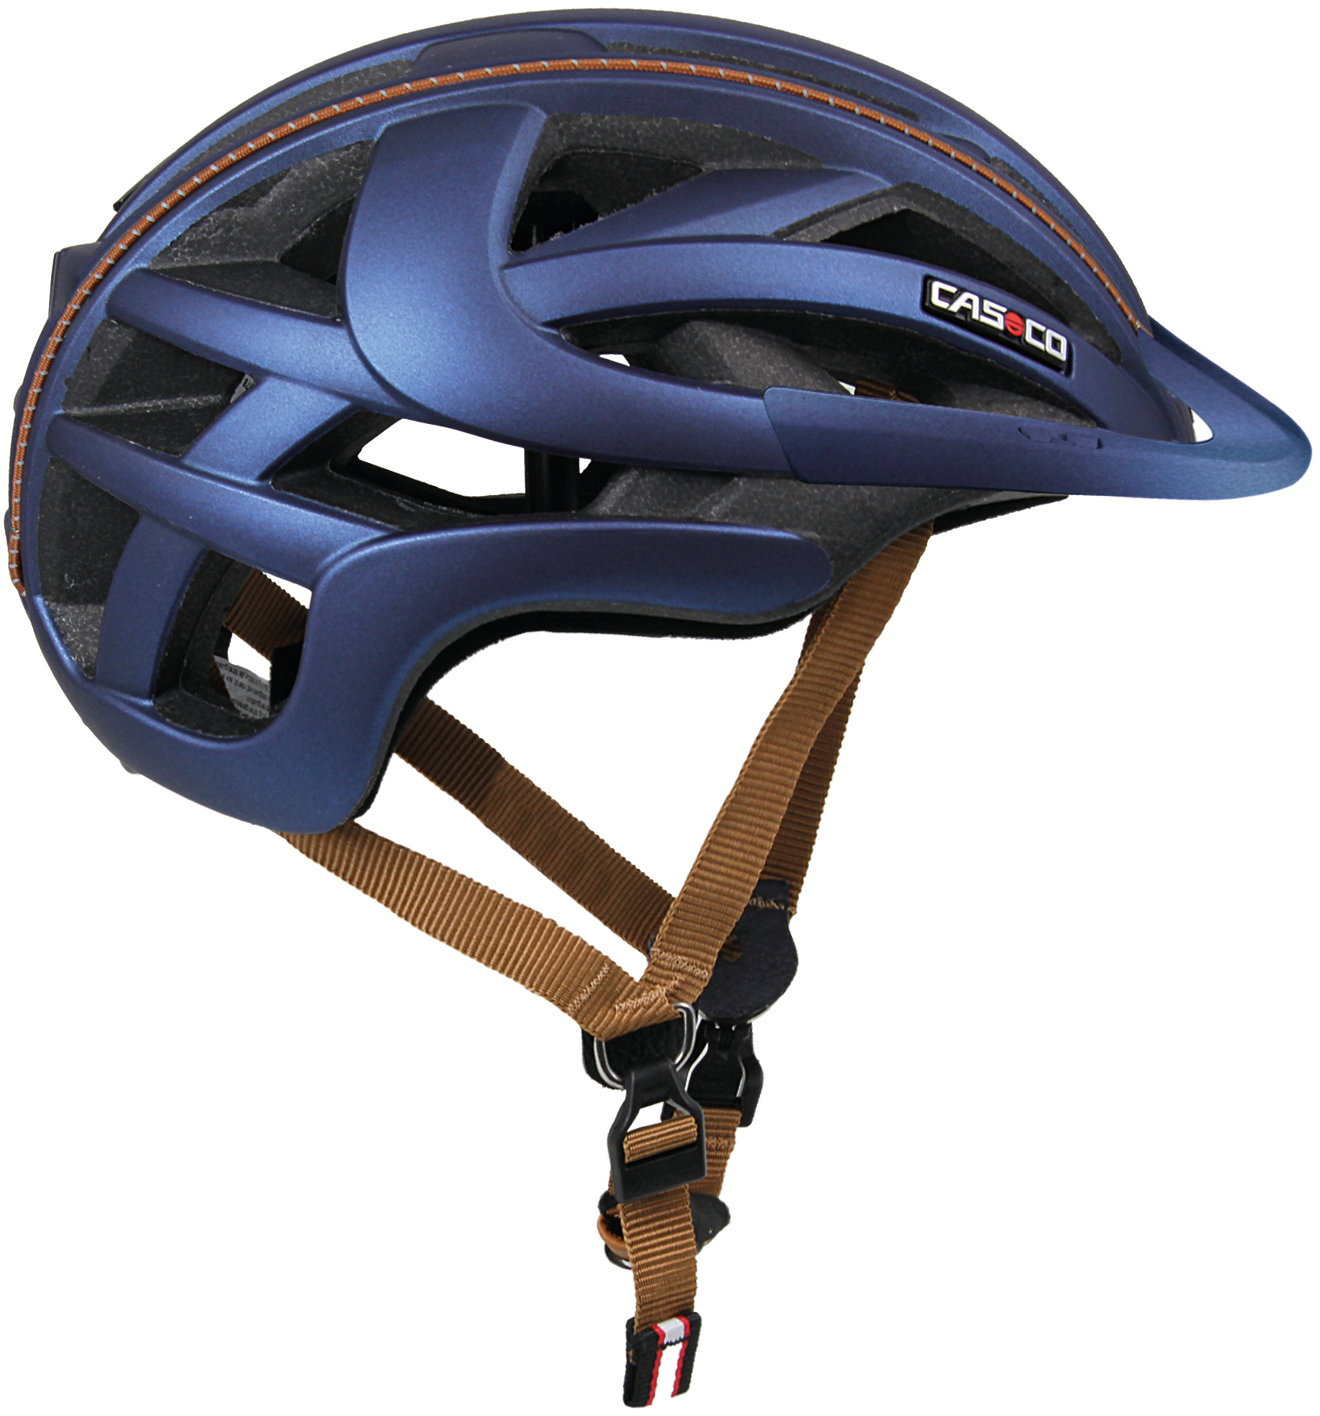 Casco_Sportiv-TC_Blue_brown_1720